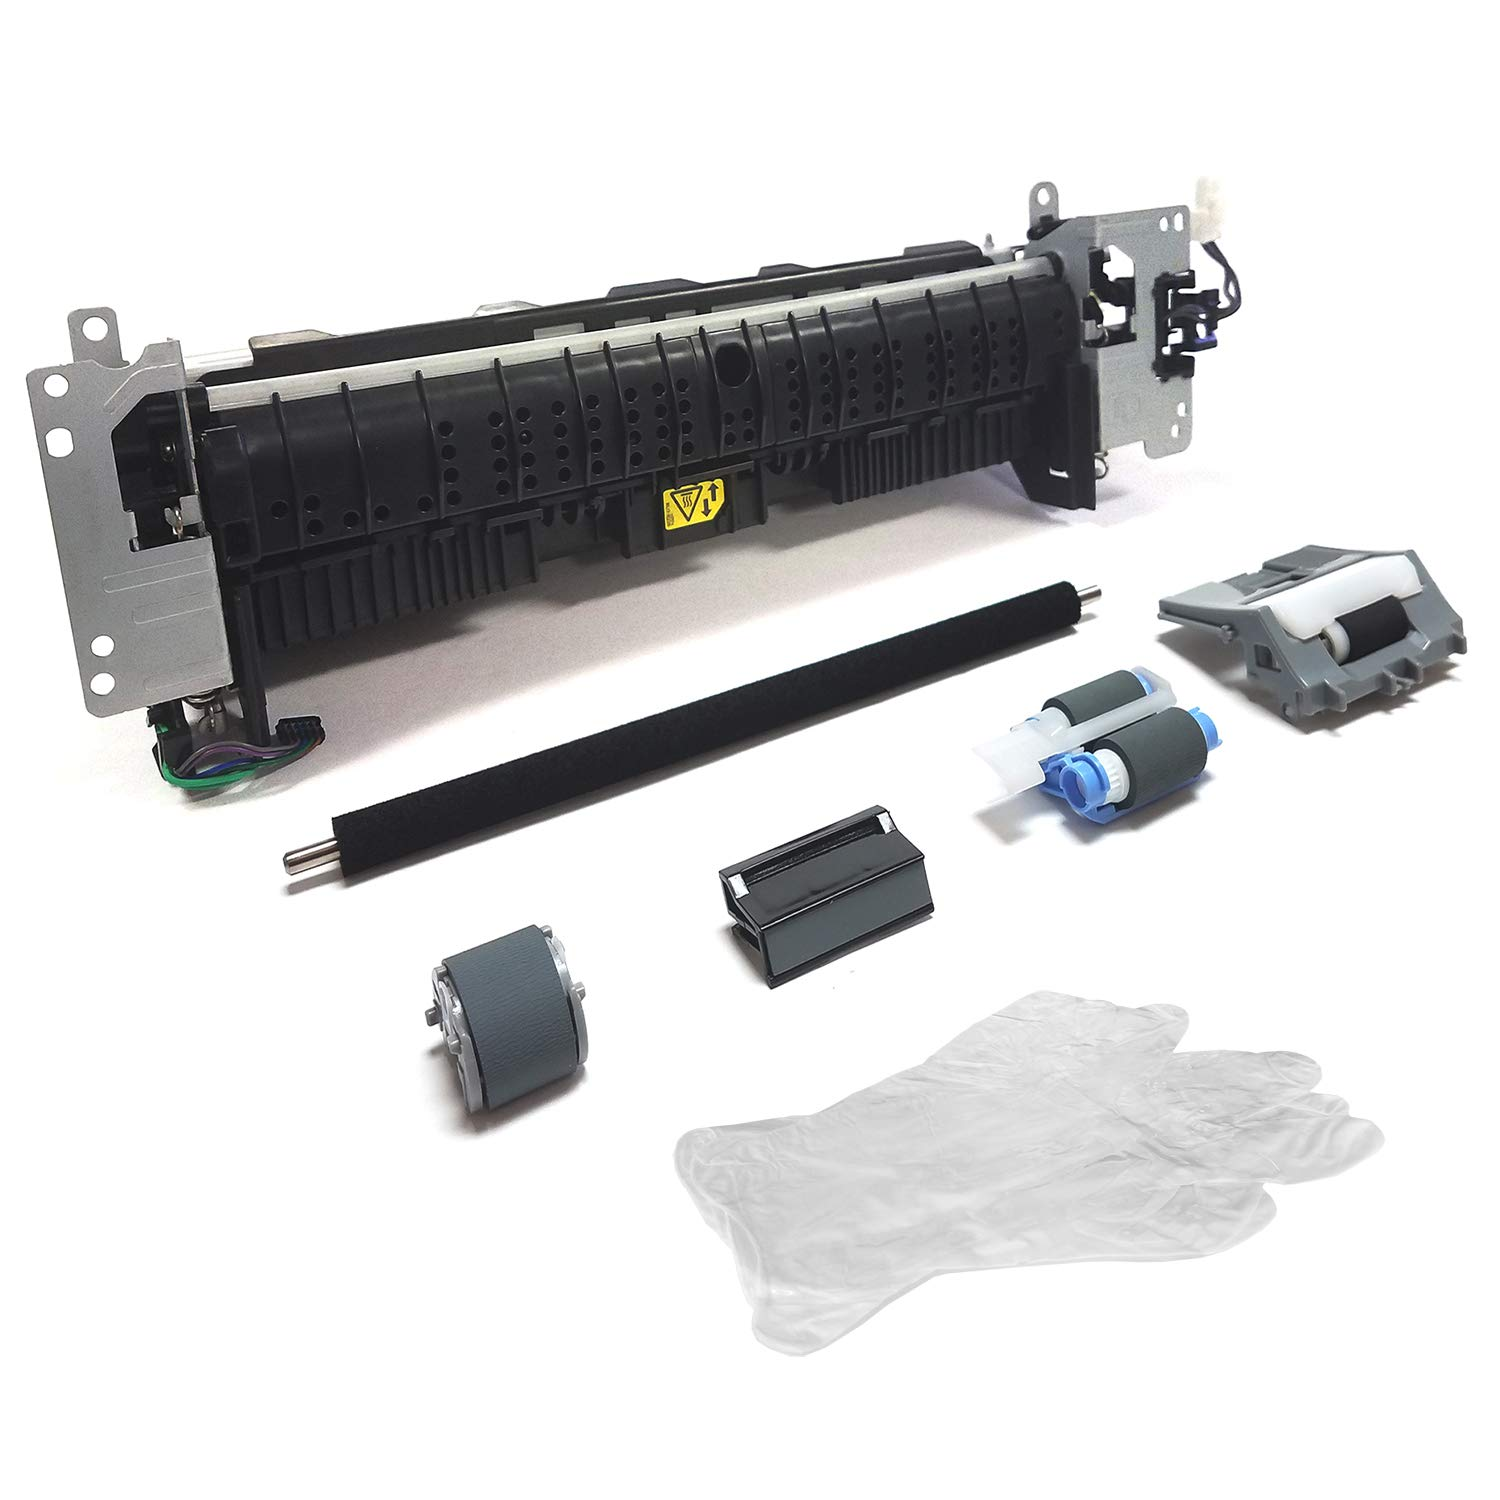 Altru Print RM2-5679-MK-AP (FM1-V151) Maintenance Kit for HP Laserjet Pro M501, M506, M527 (110V) with Fuser, F2A68-67910 Transfer Roller, F2A68-67914 MP Tray and 1 Pair of F2A68-67913 Tray 2 Rollers by Altru Print